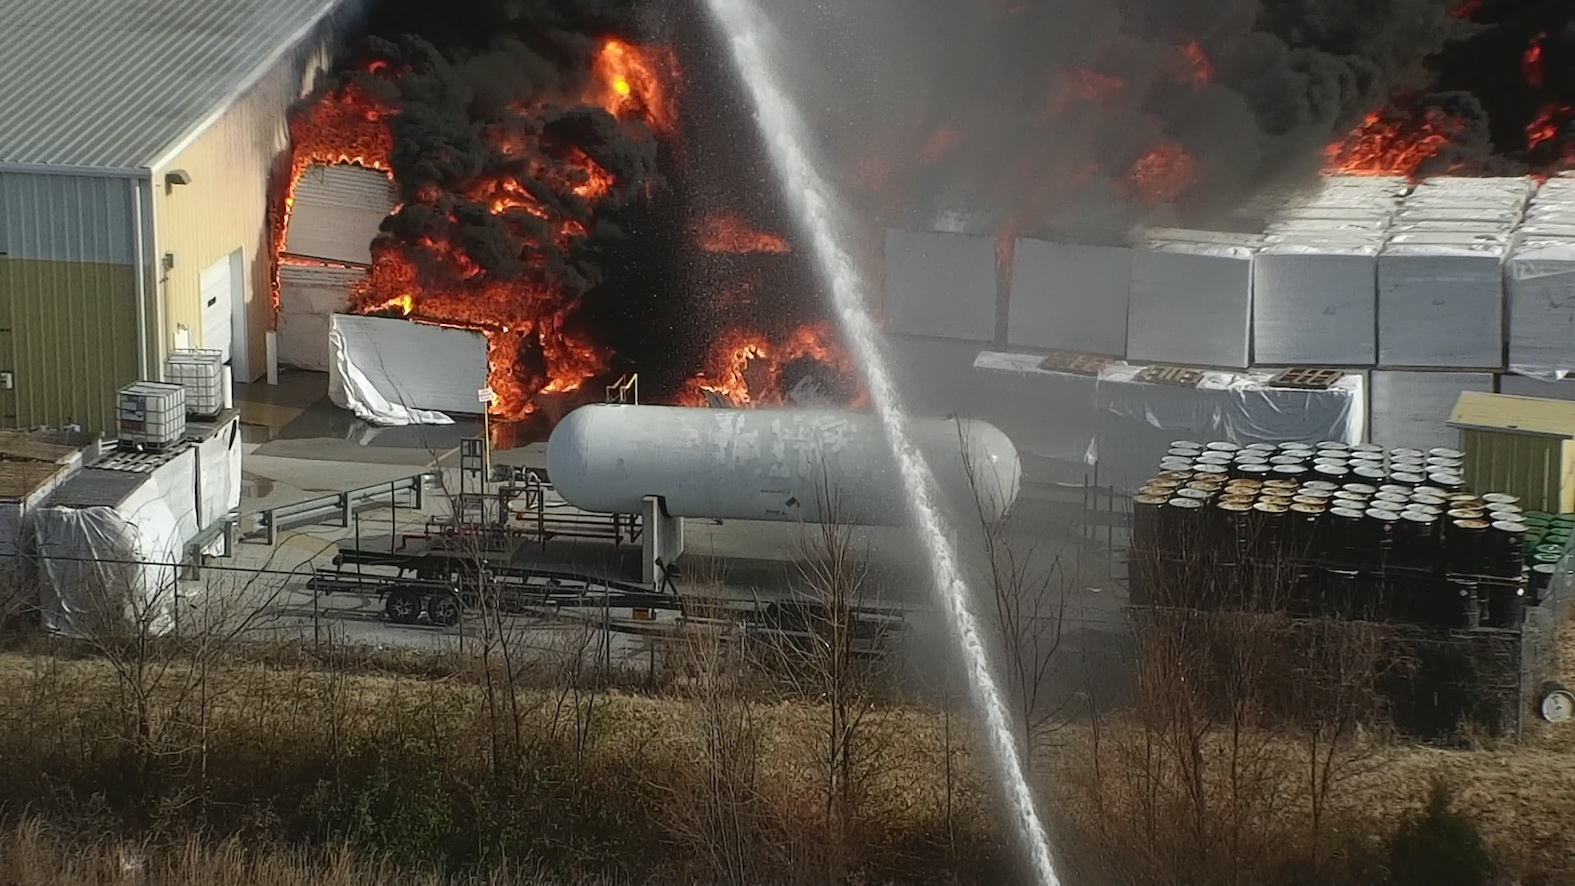 Drone close-up on a volatile industrial fire